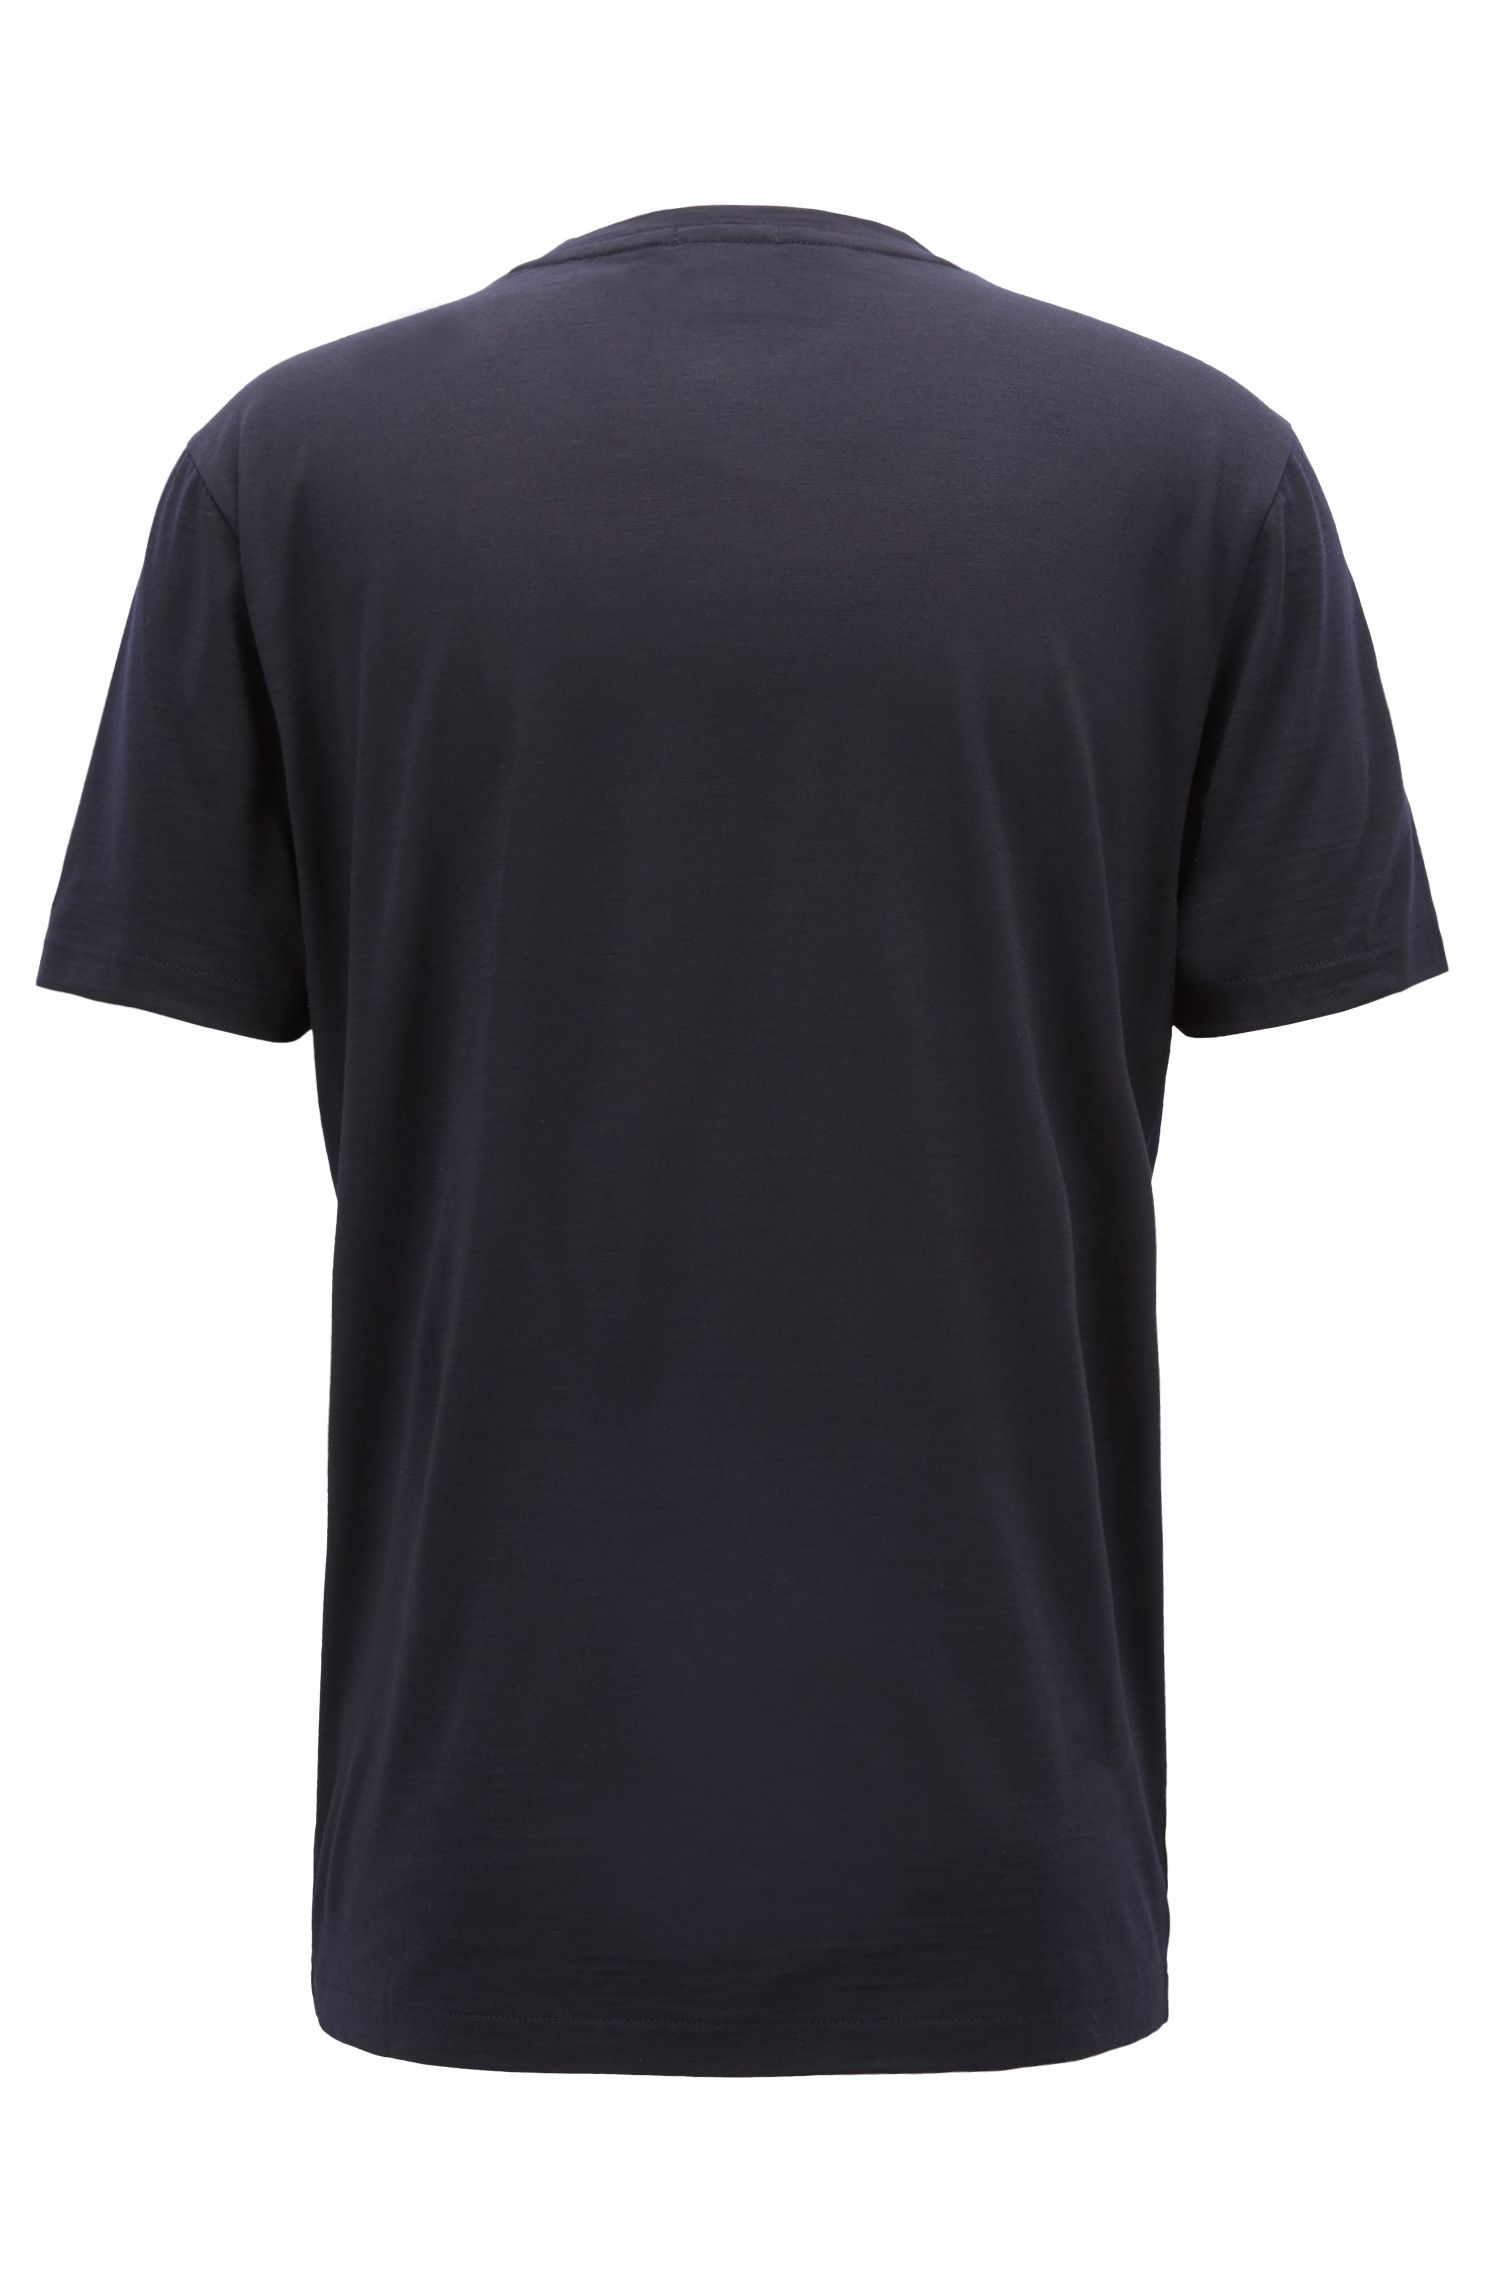 T-shirt de la collection Travel Line en laine vierge italienne, Bleu